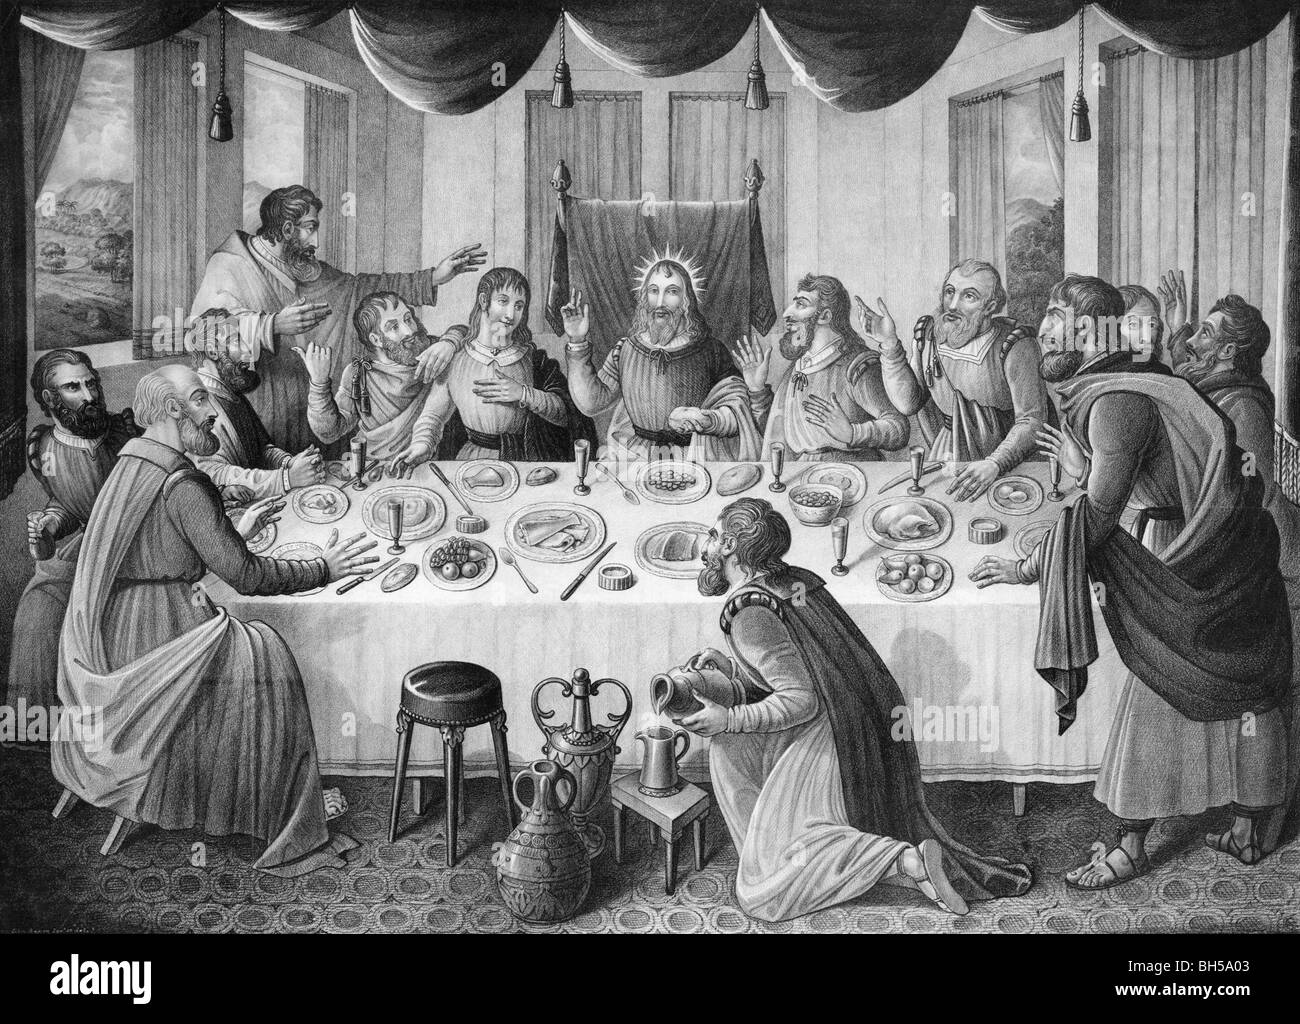 print circa 1835 showing the last supper of jesus christ and his